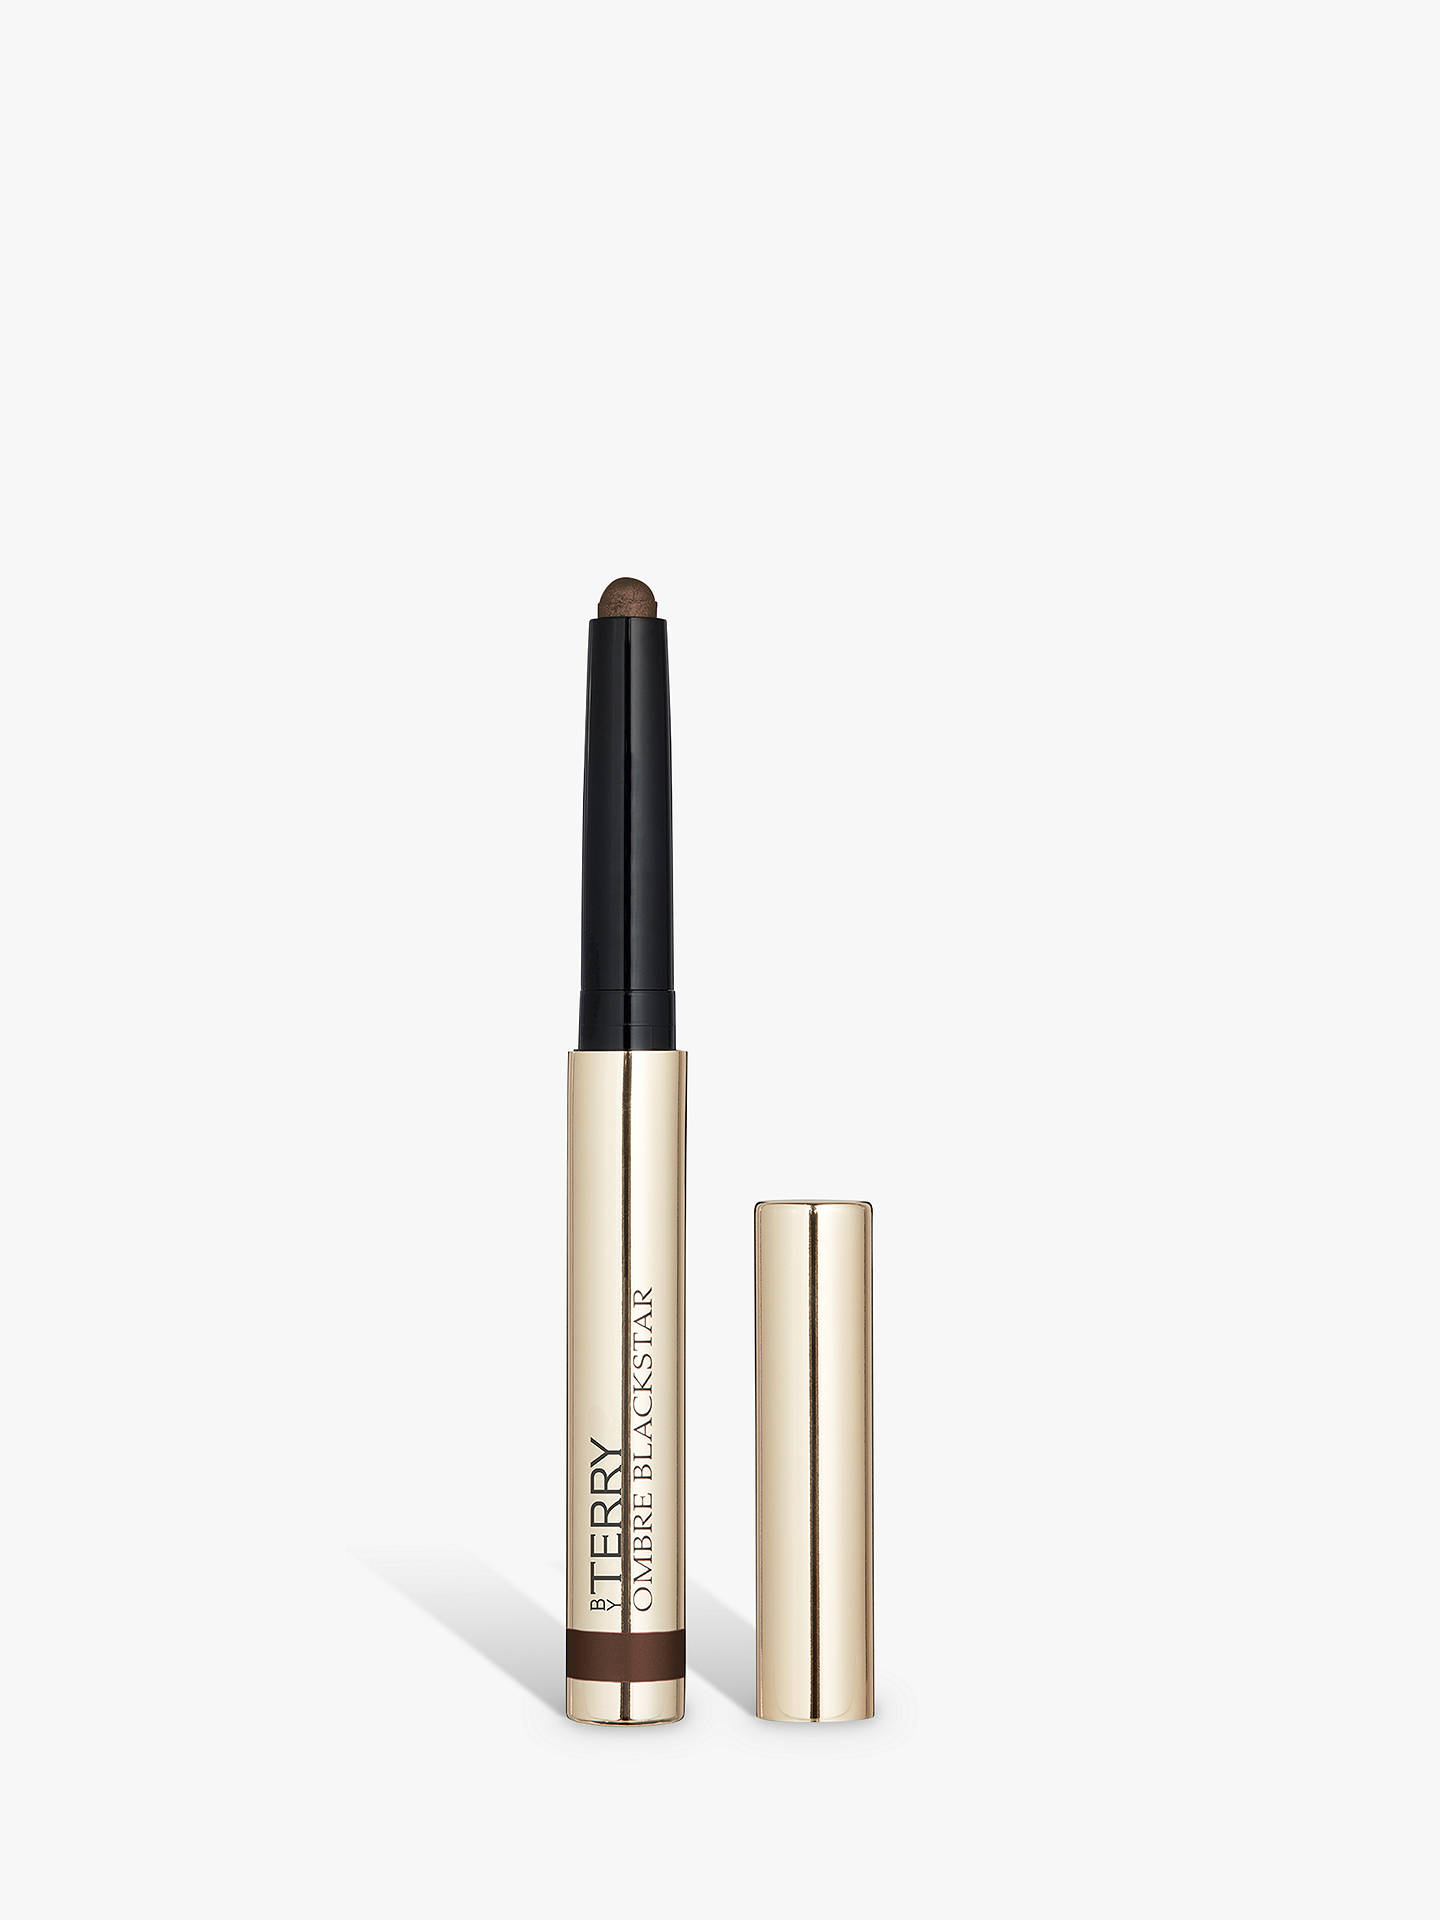 BuyBY TERRY Ombre Blackstar Eyeshadow Bronze Moon Online at johnlewis.com